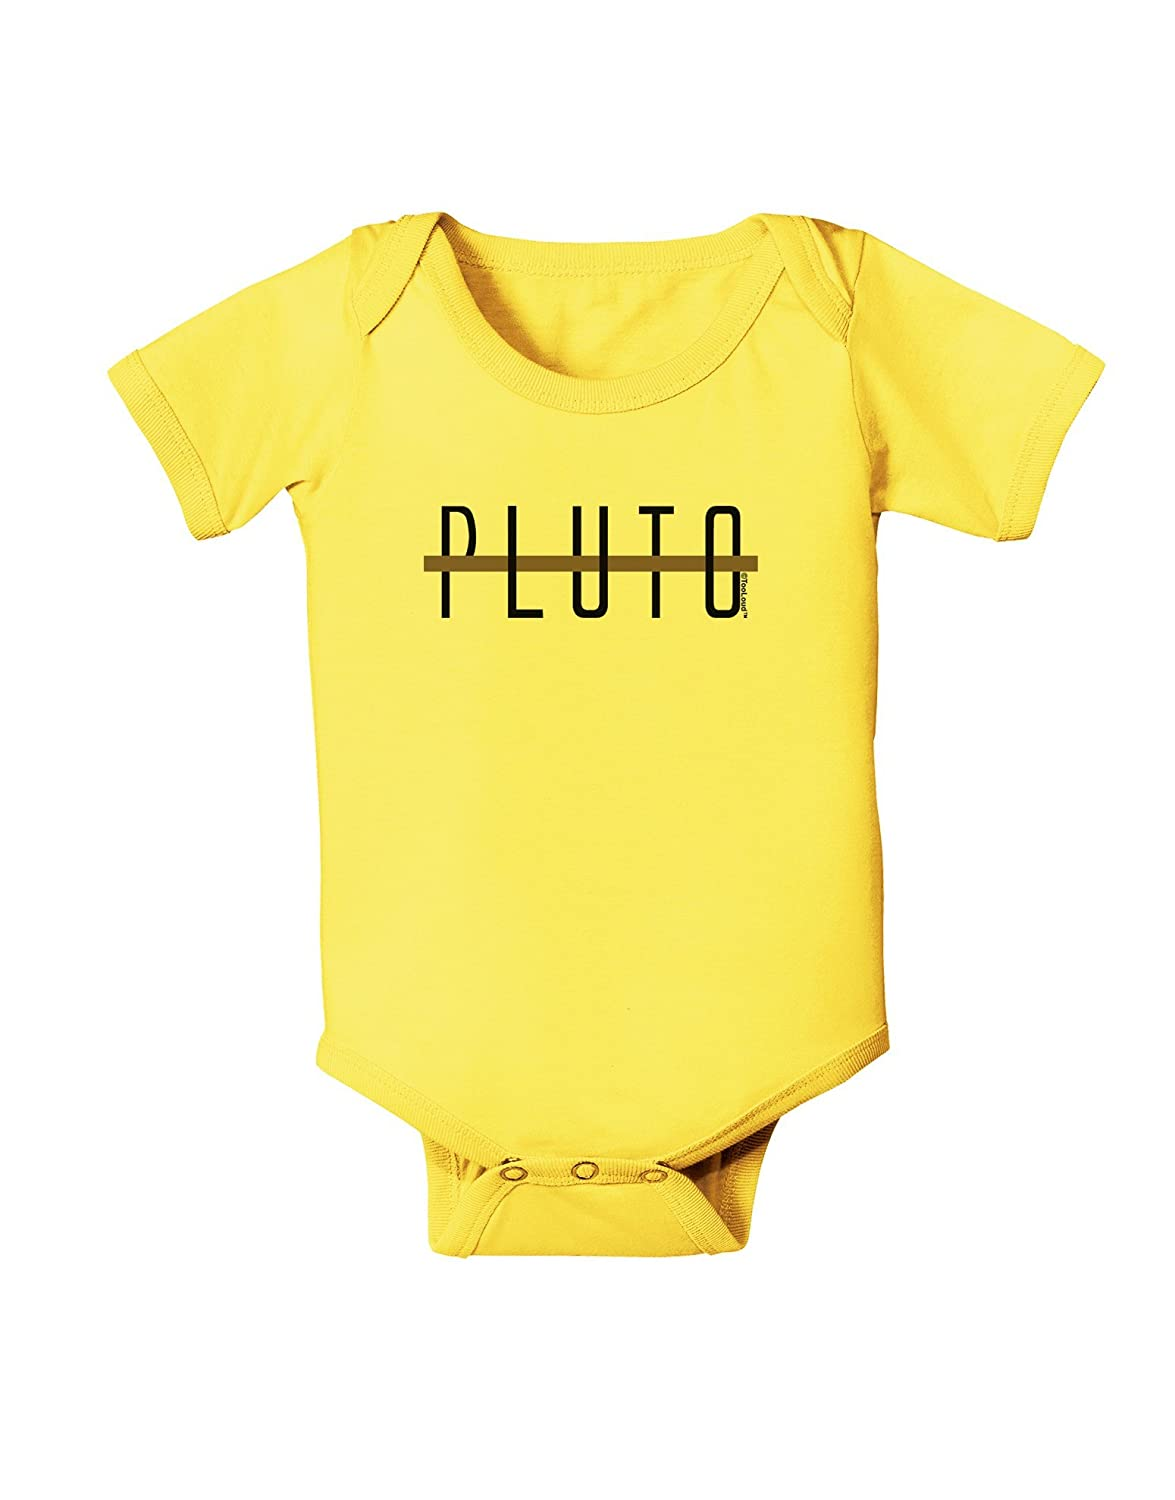 TooLoud Planet Pluto Text Only Baby Romper Bodysuit